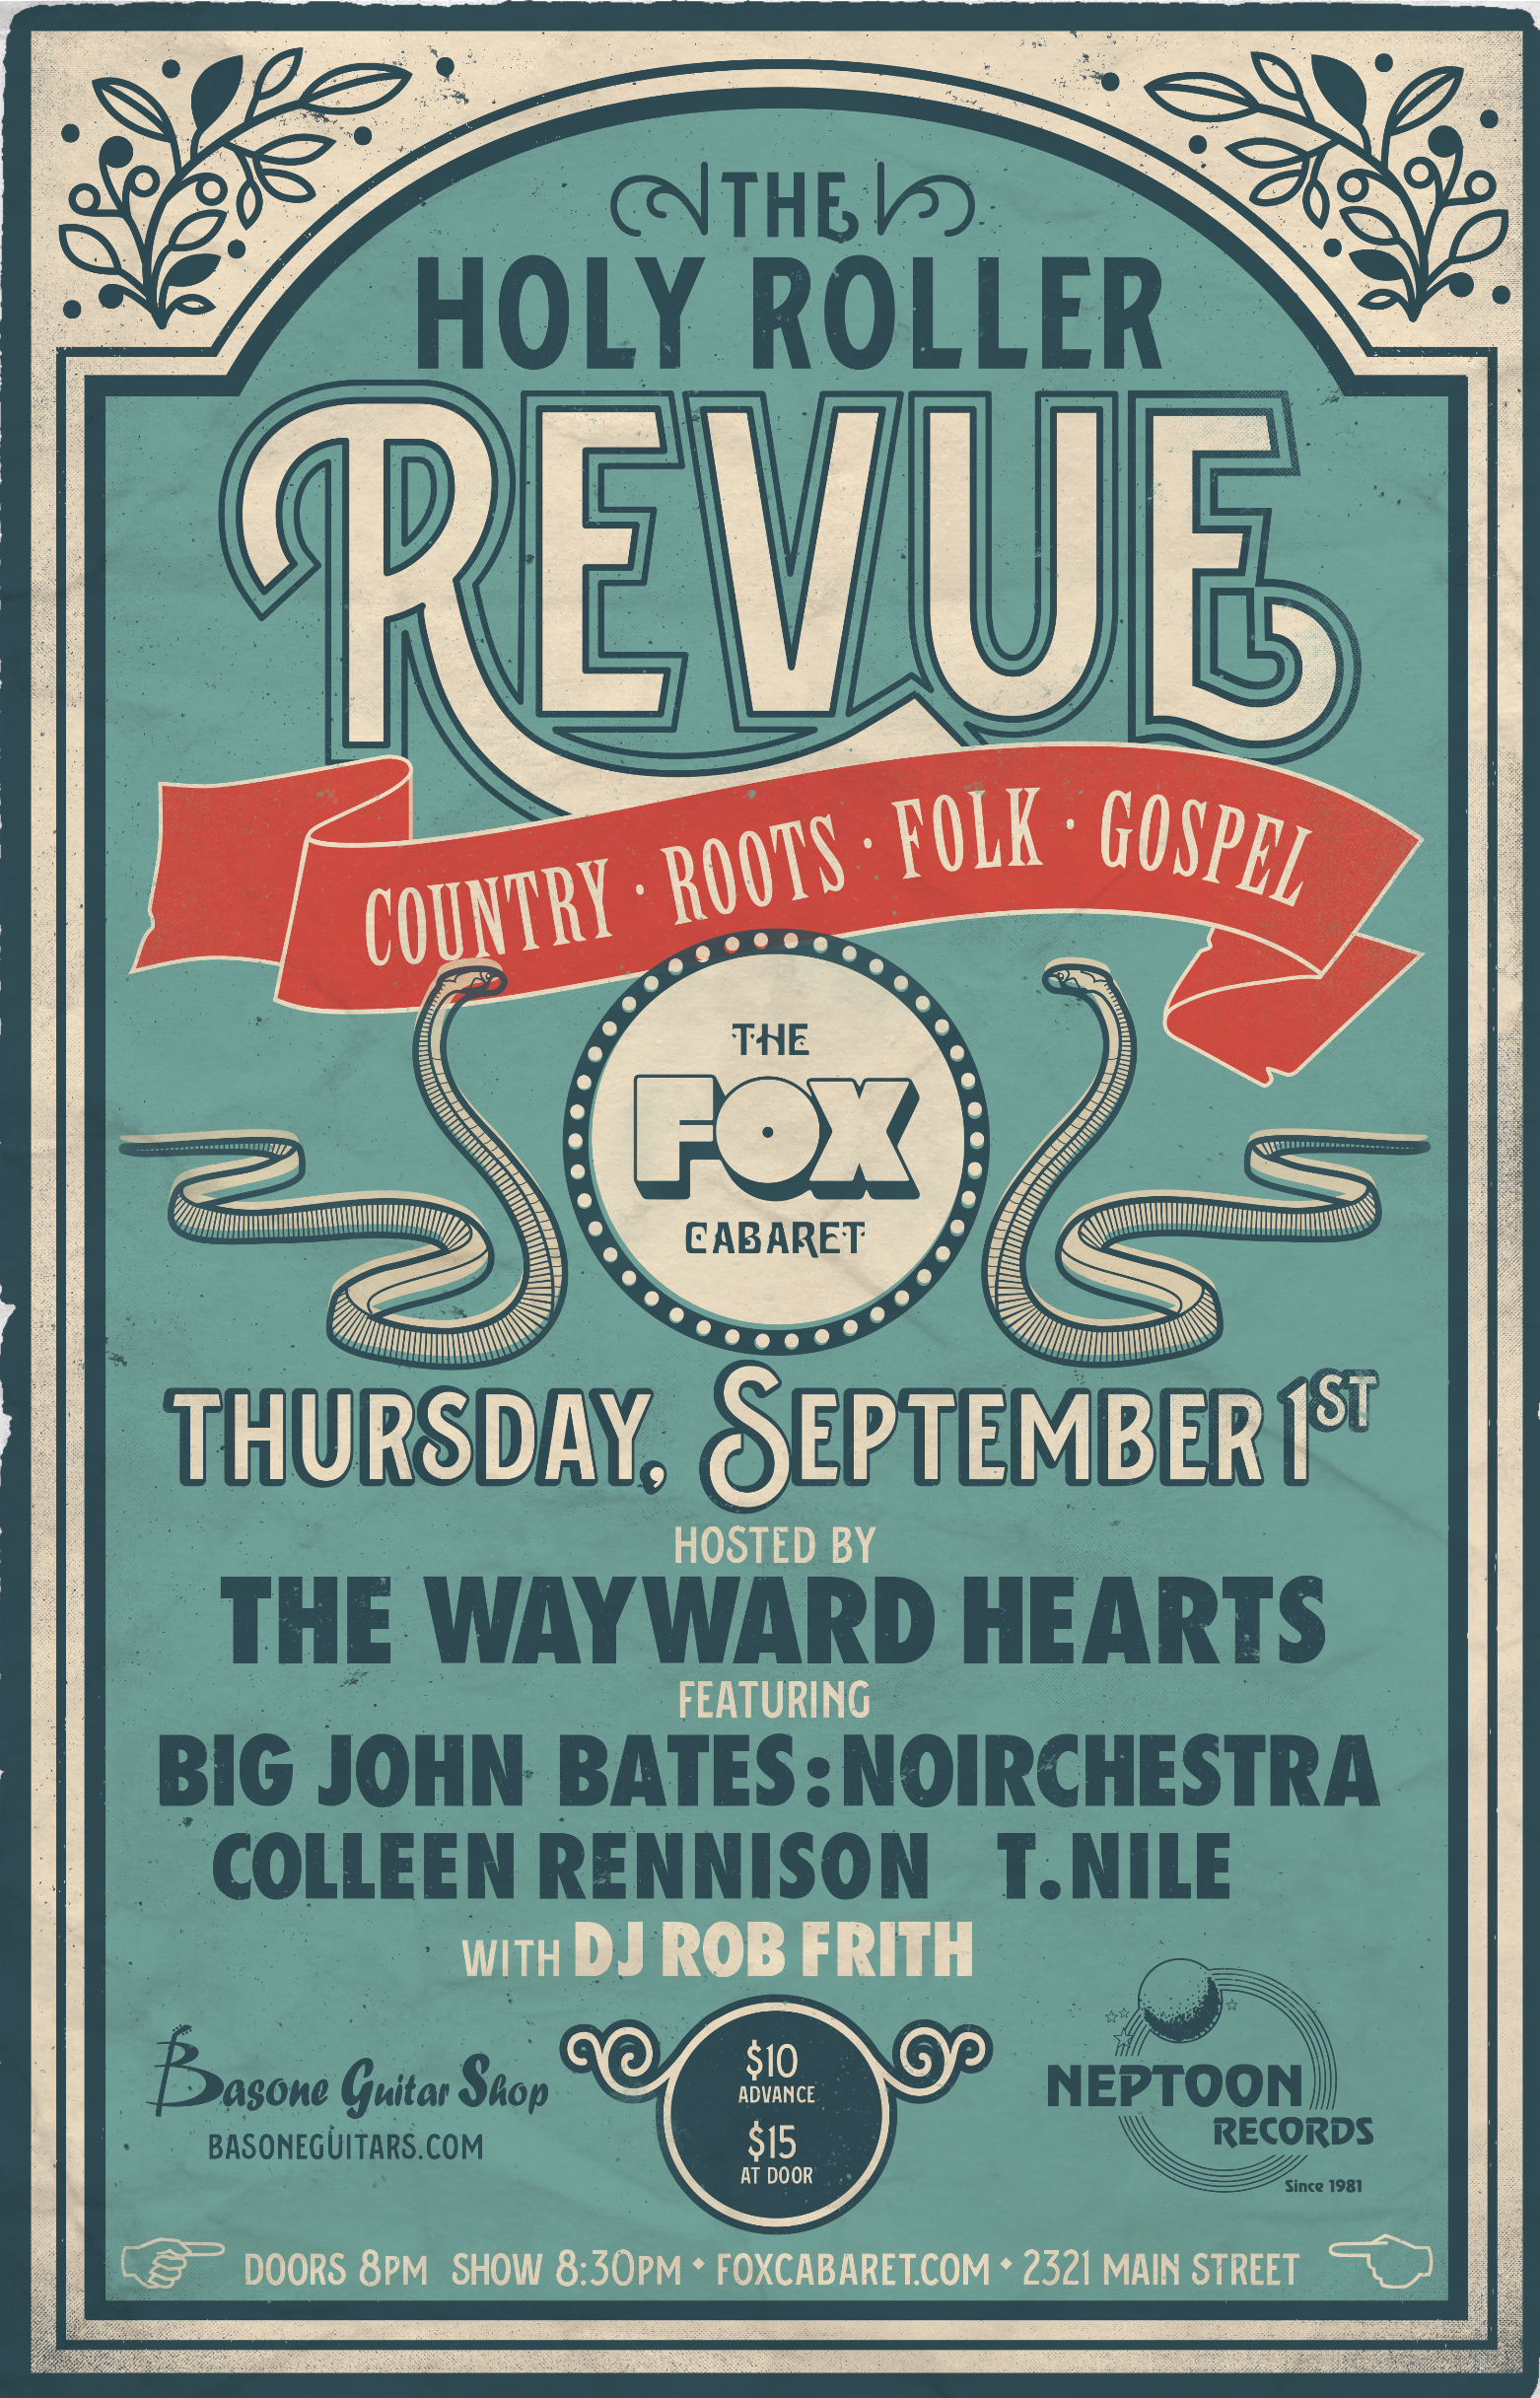 Vintage Inspired Poster Design For Country Roots Folk Music Series In Vancouver Music Poster Design Concert Series Poster Country Festivals